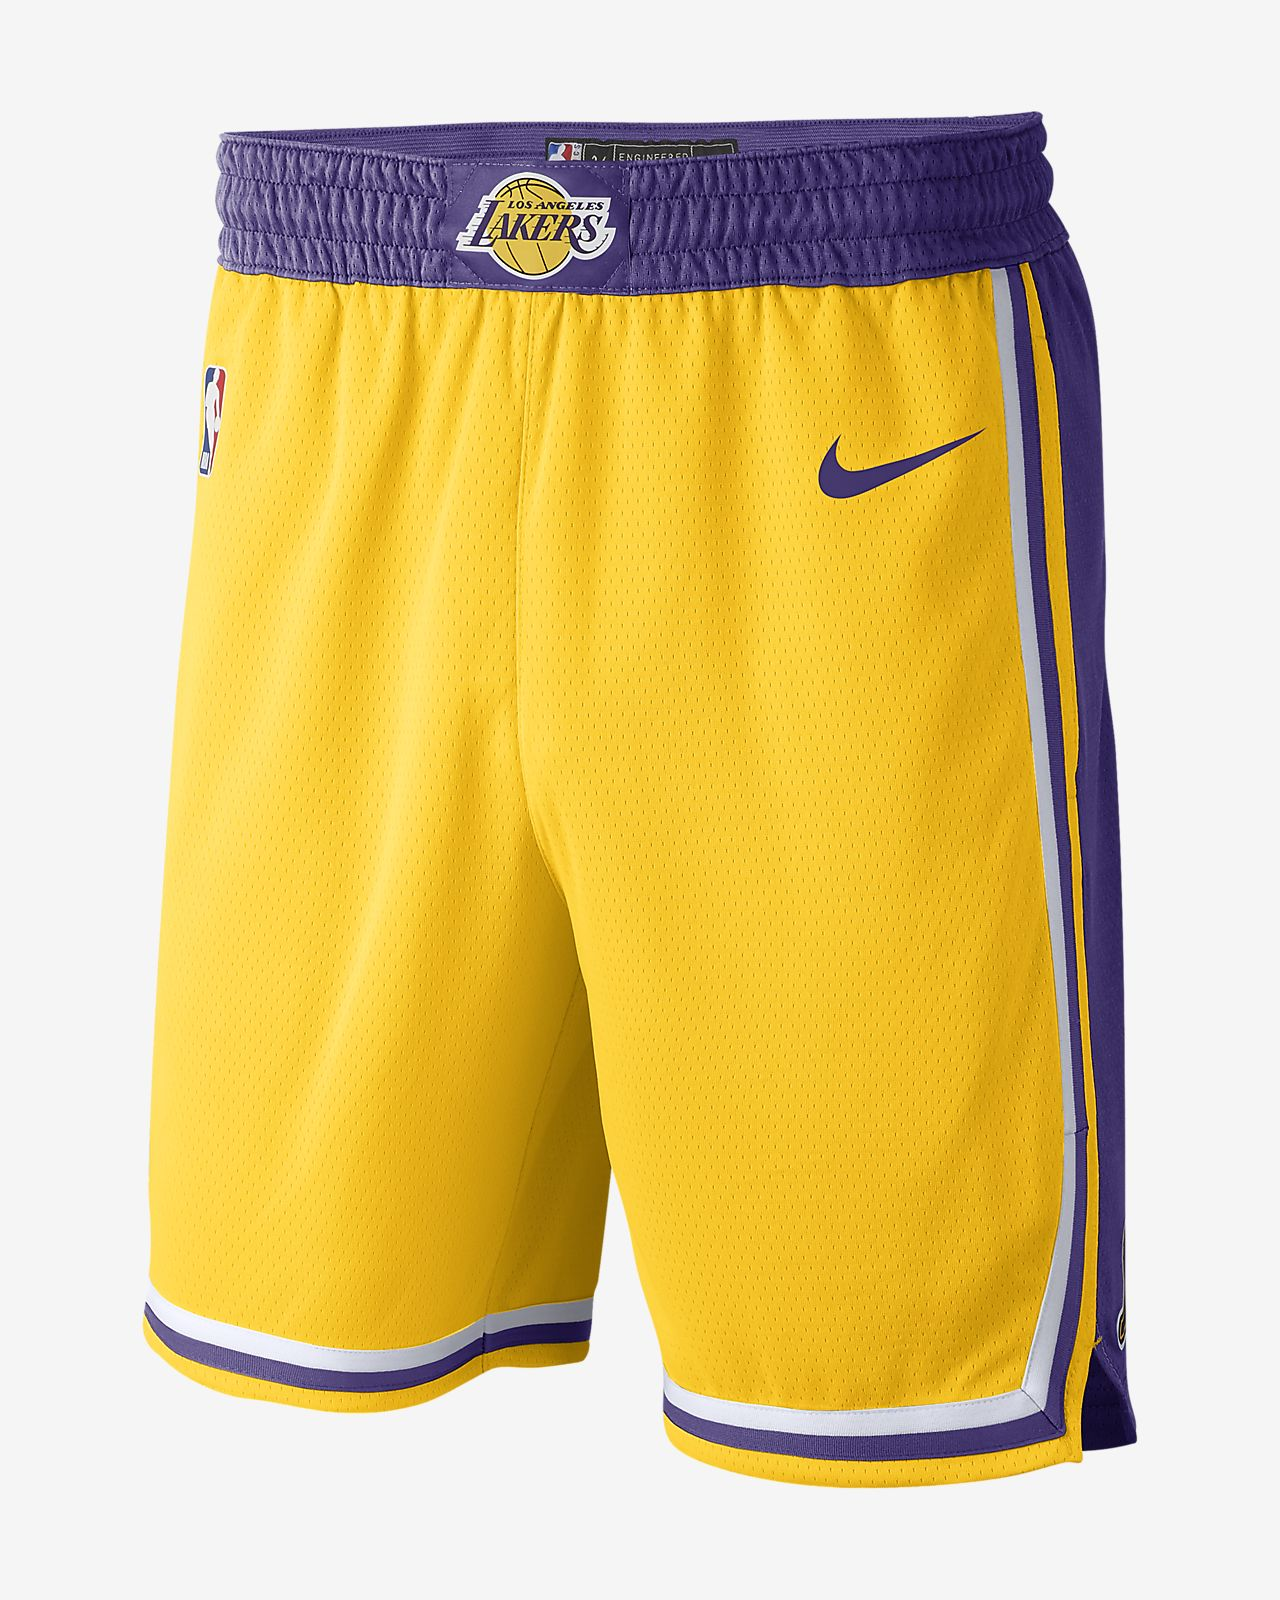 Los Angeles Lakers Icon Edition Swingman Pantalón corto Nike de la NBA - Hombre